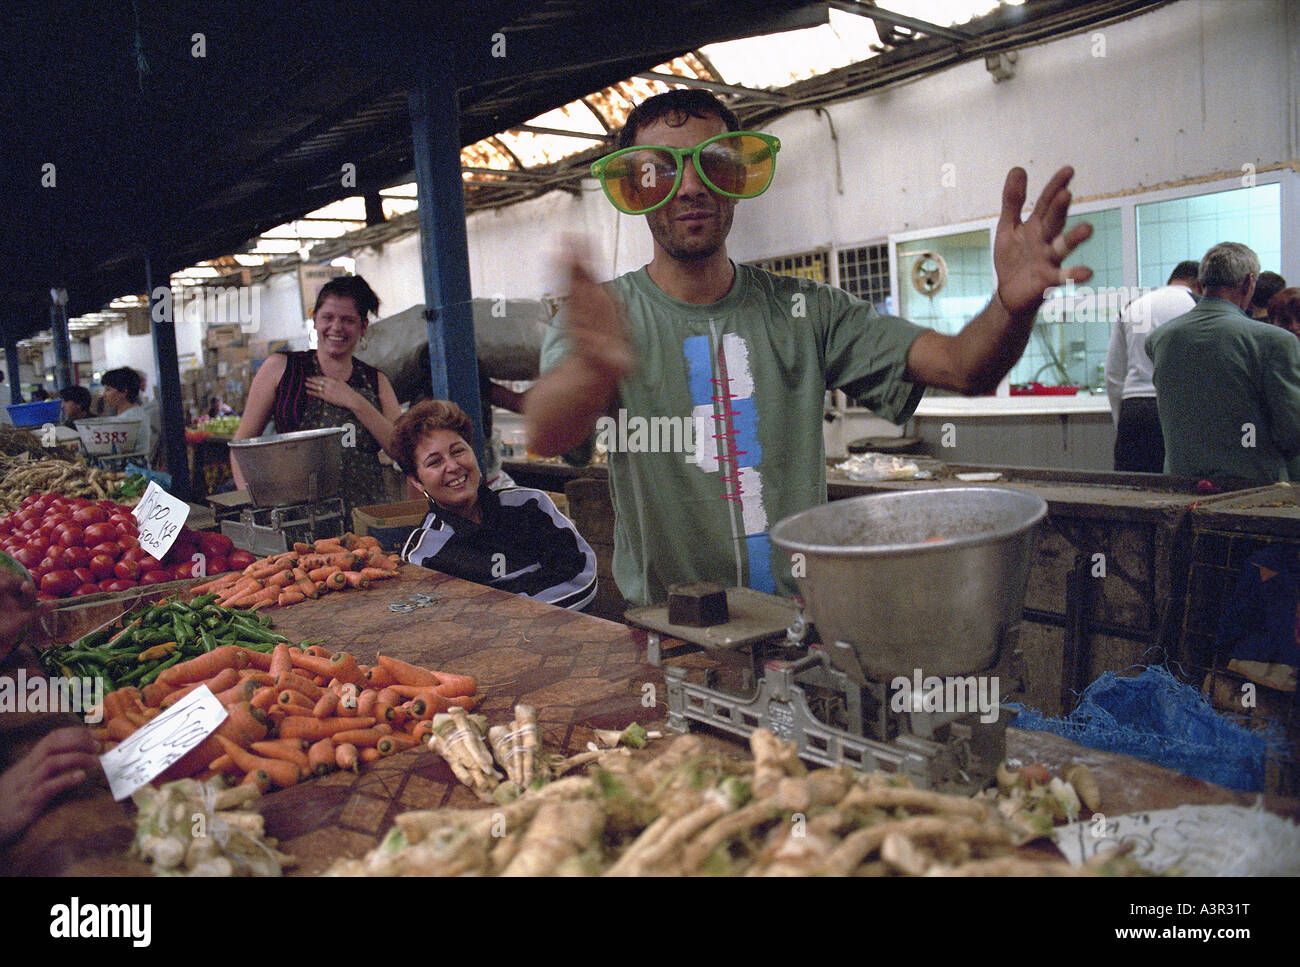 Vegetable seller in funny oversize glasses at a market, Bucharest, Romania - Stock Image